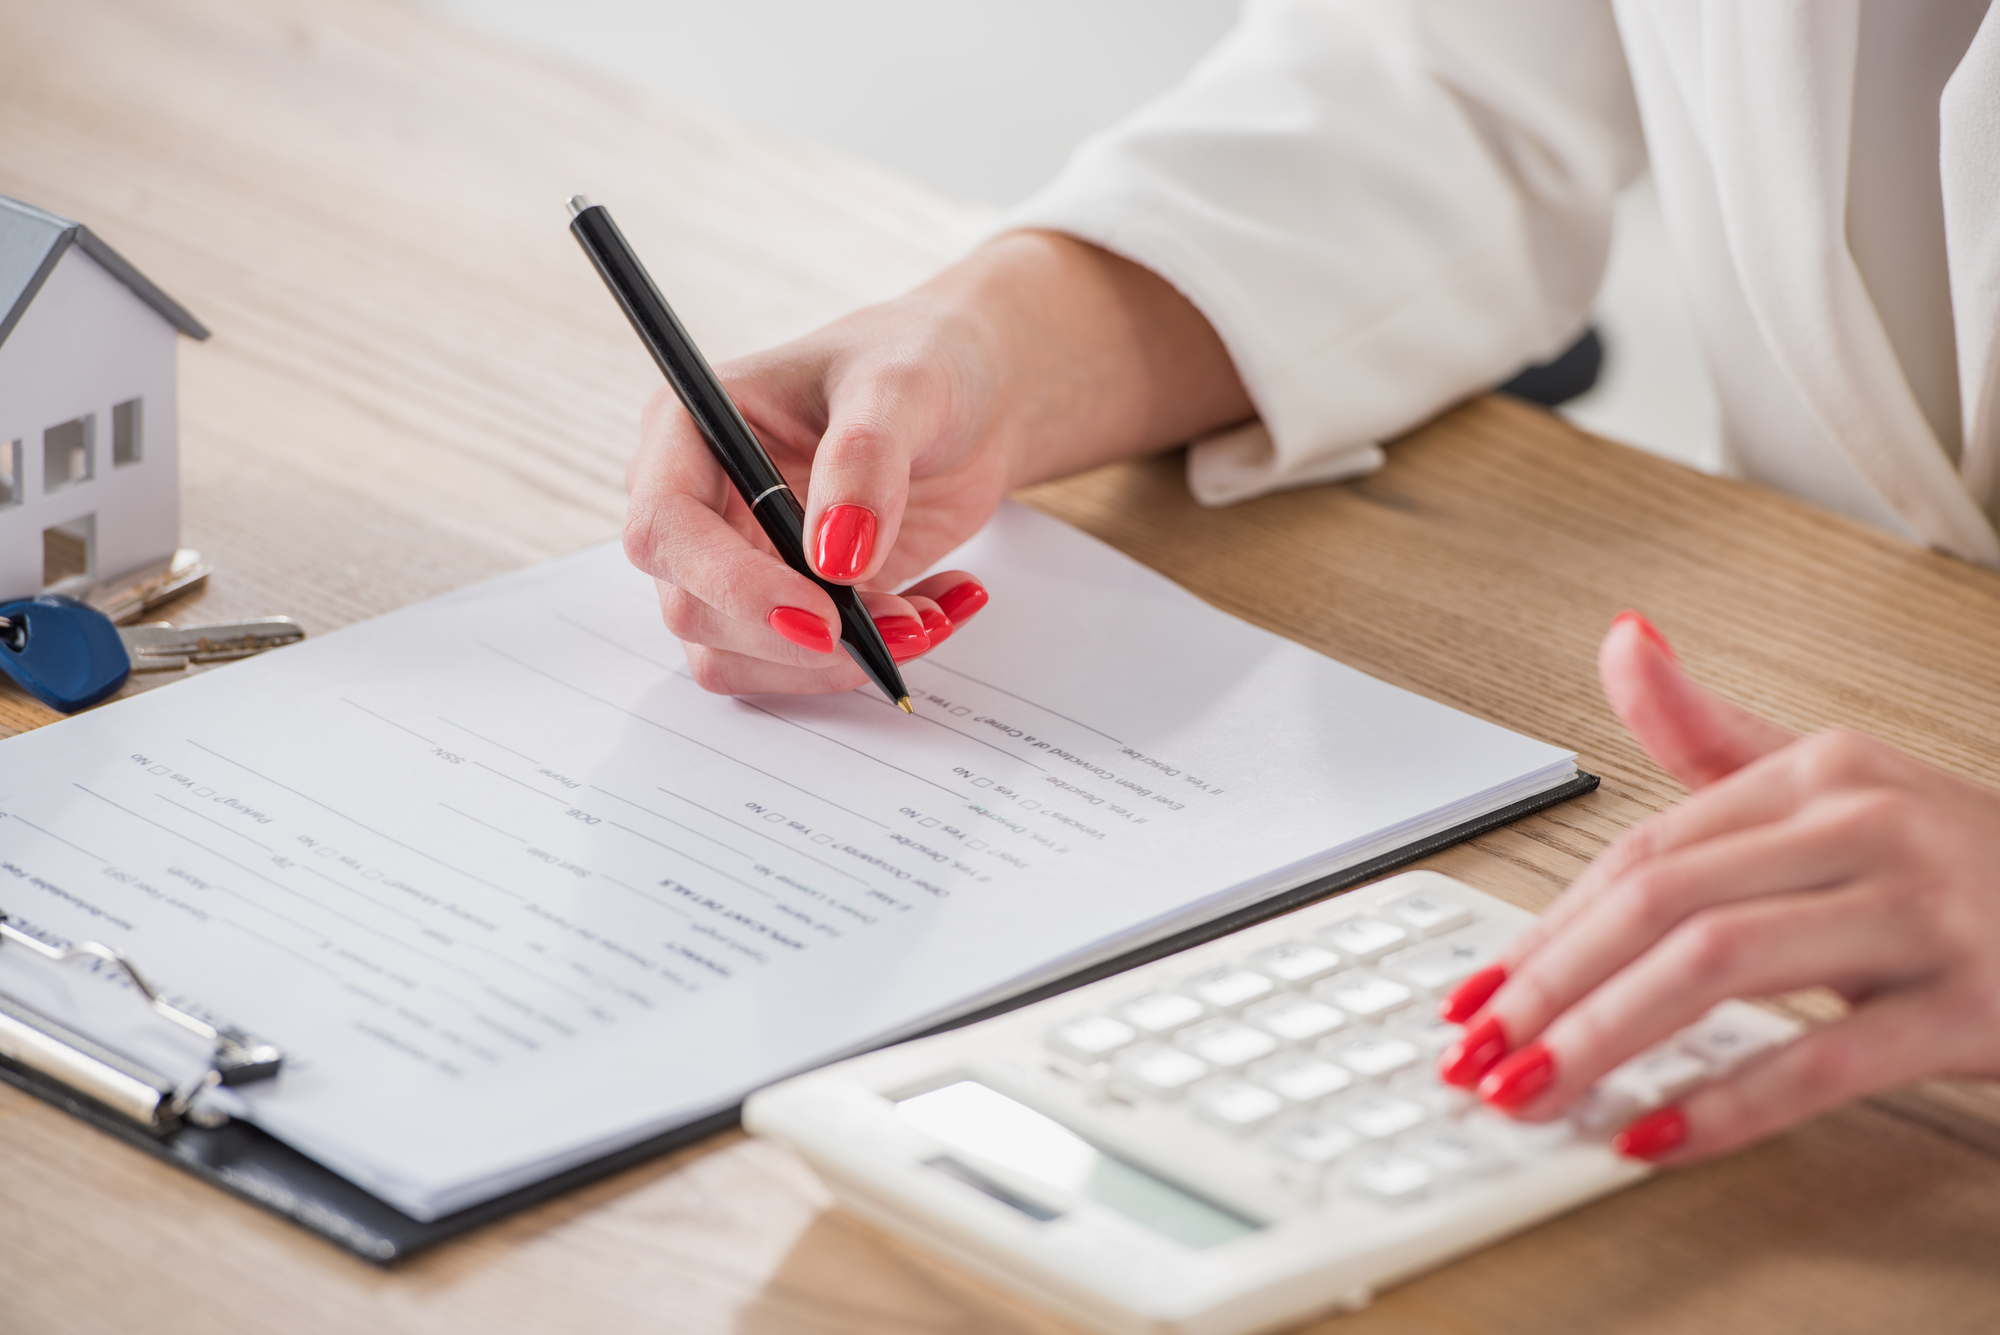 Cropped view of businesswoman using calculator and writing in contract near house model and keys